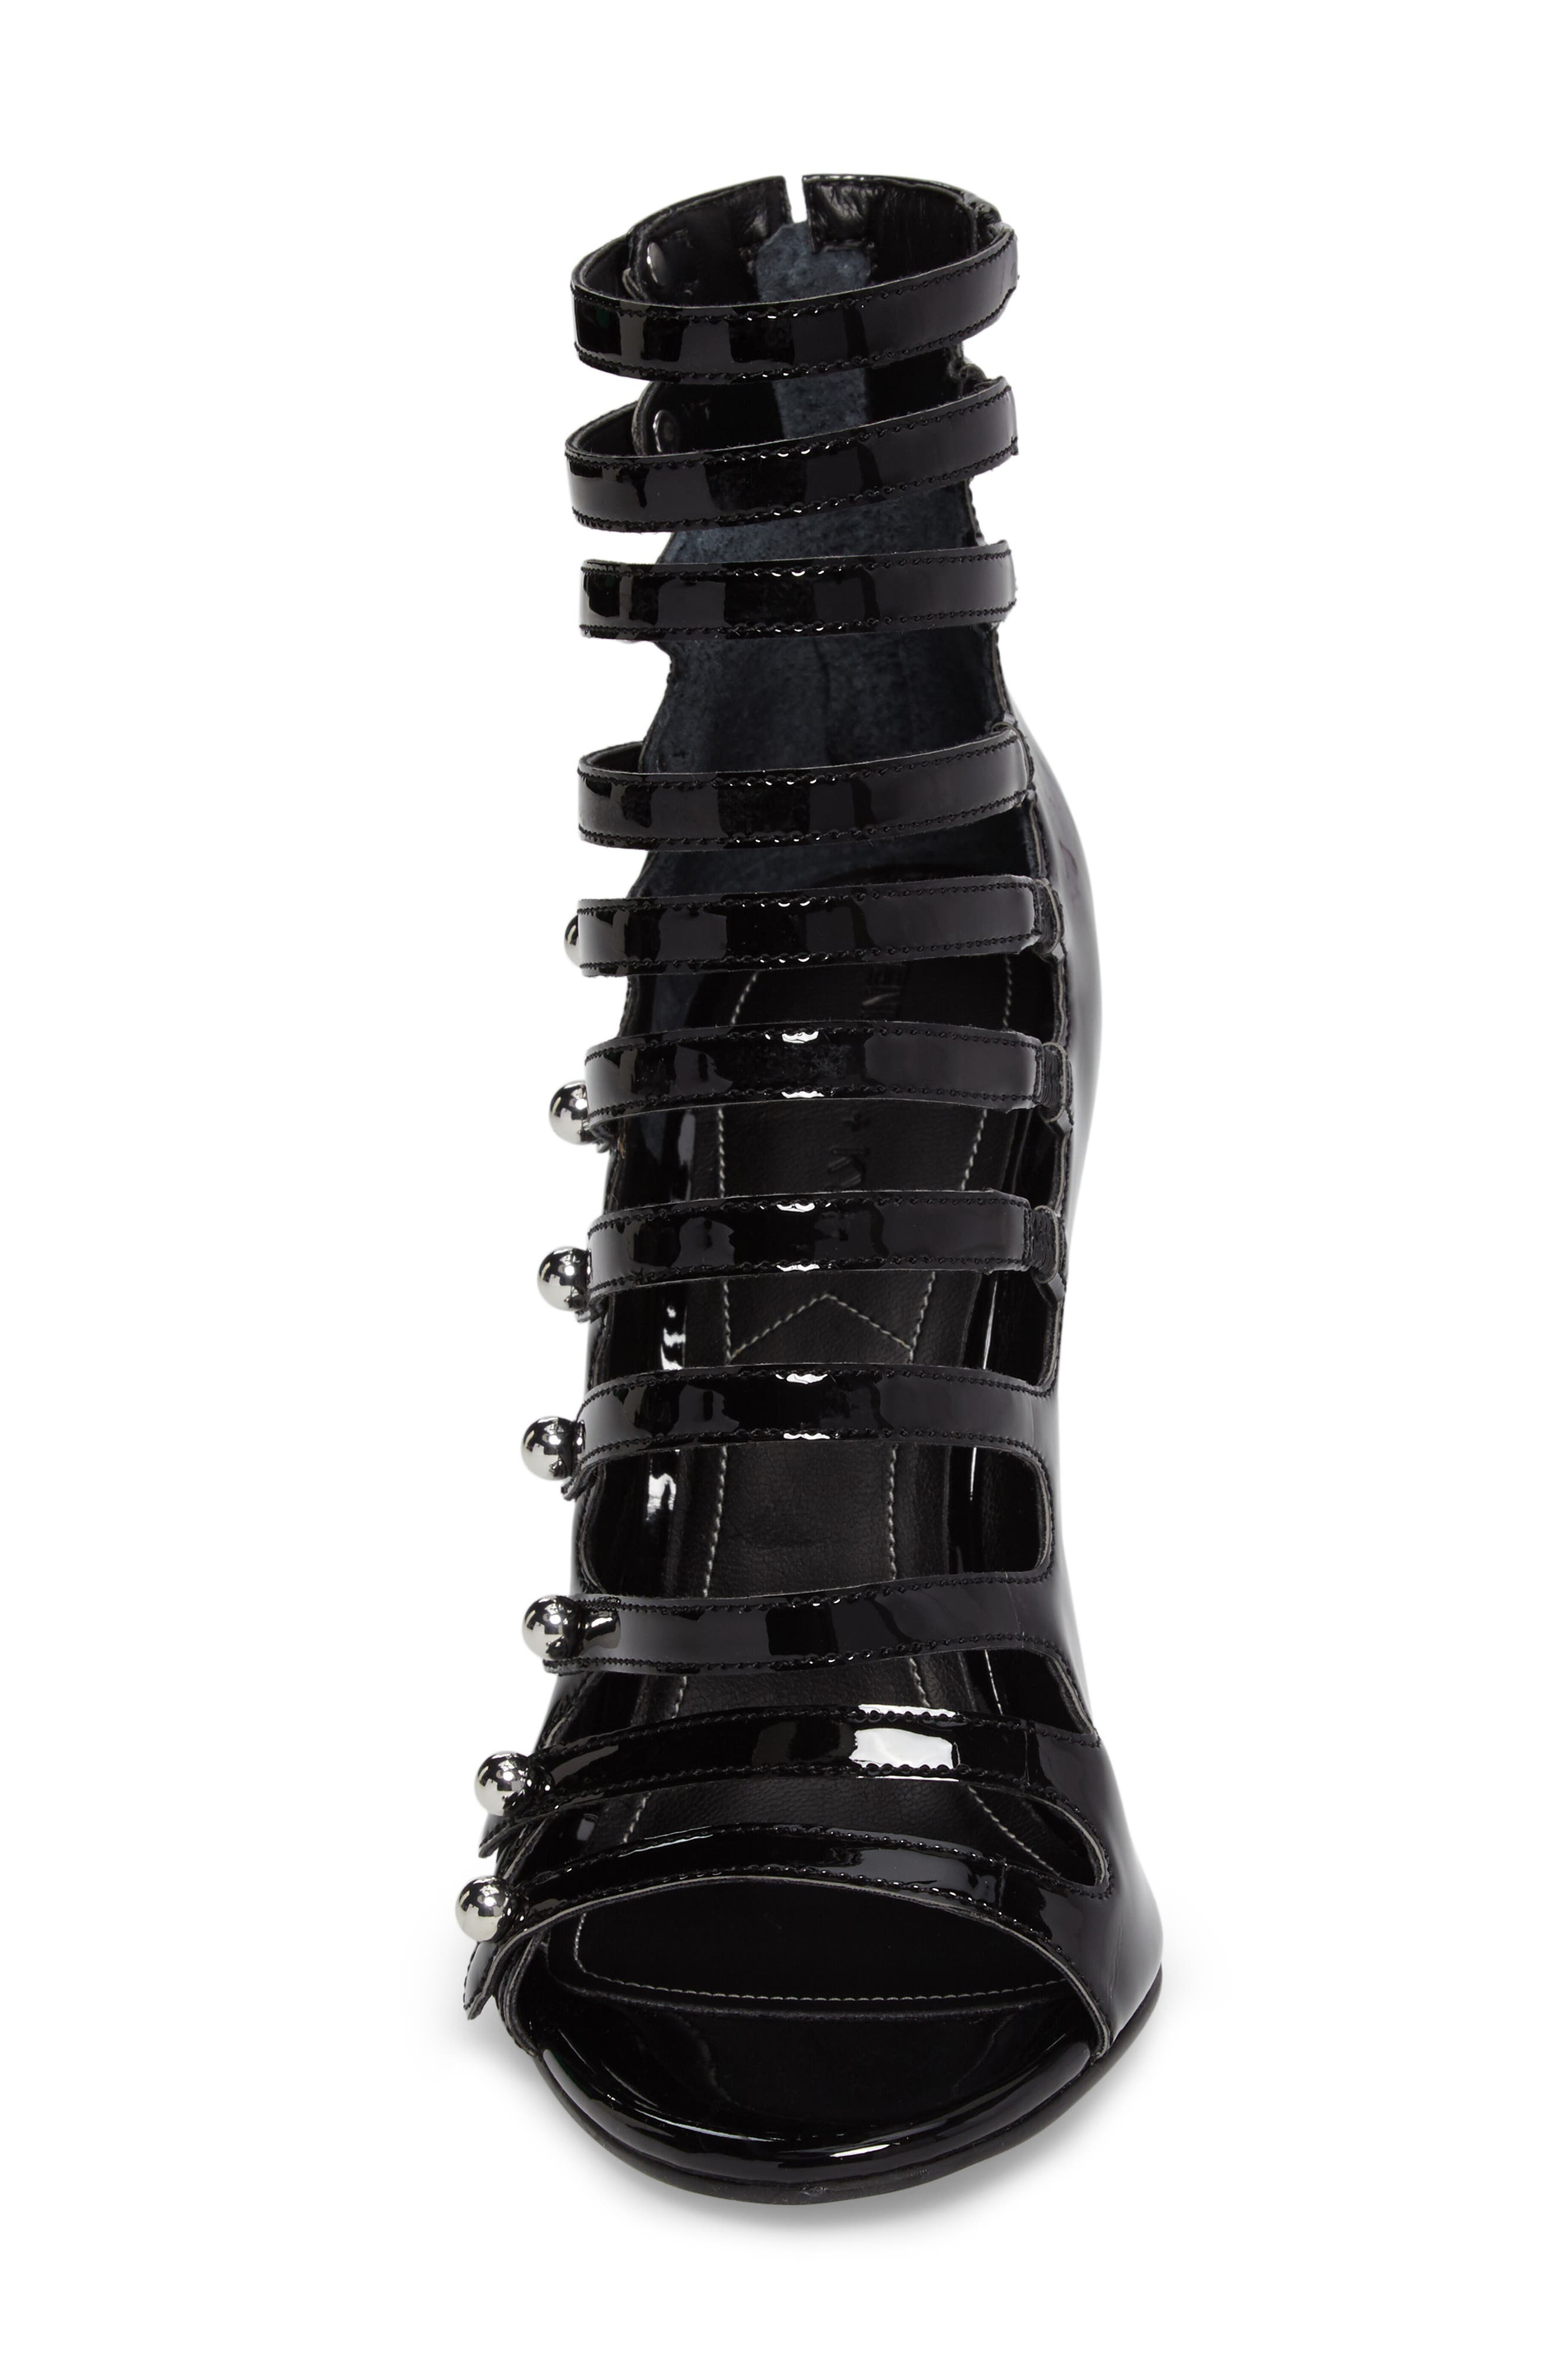 Giaa Strappy Sandal,                             Alternate thumbnail 4, color,                             Black Patent Leather